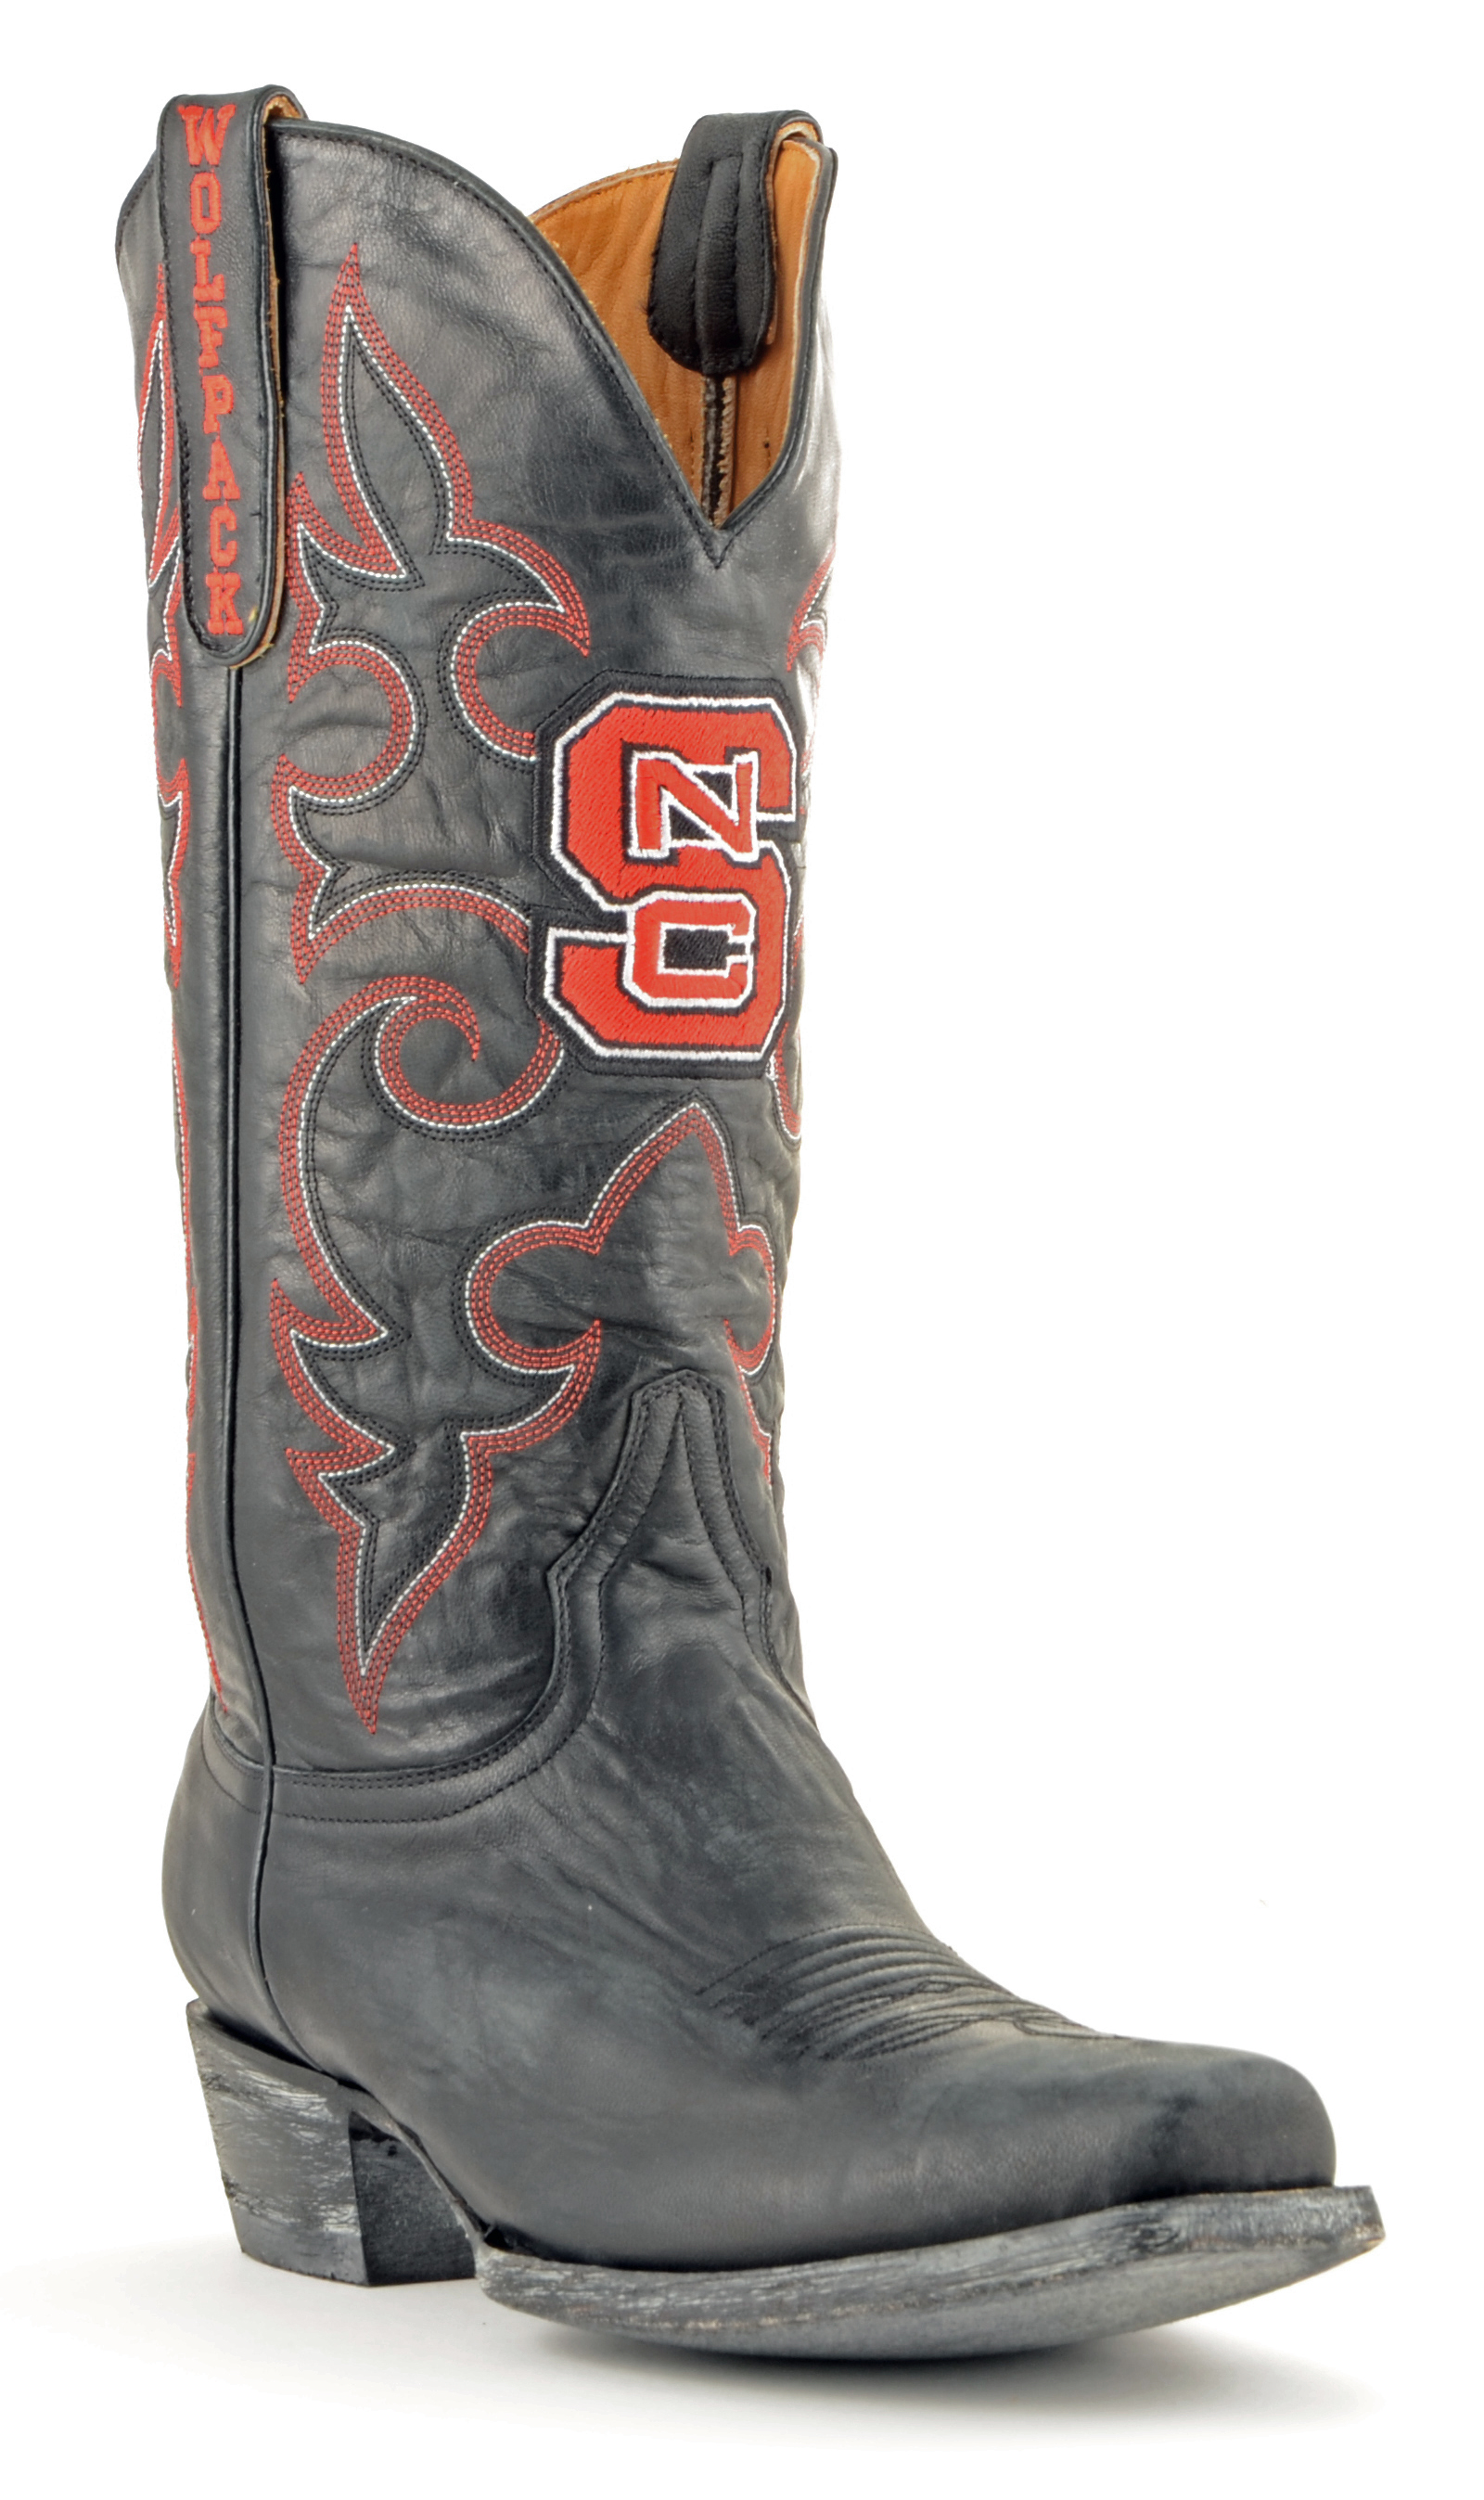 Gameday Boots Mens Black Leather N Carolina State Cowboy Boots (12) Ncs-M213-2 by GameDay Boots